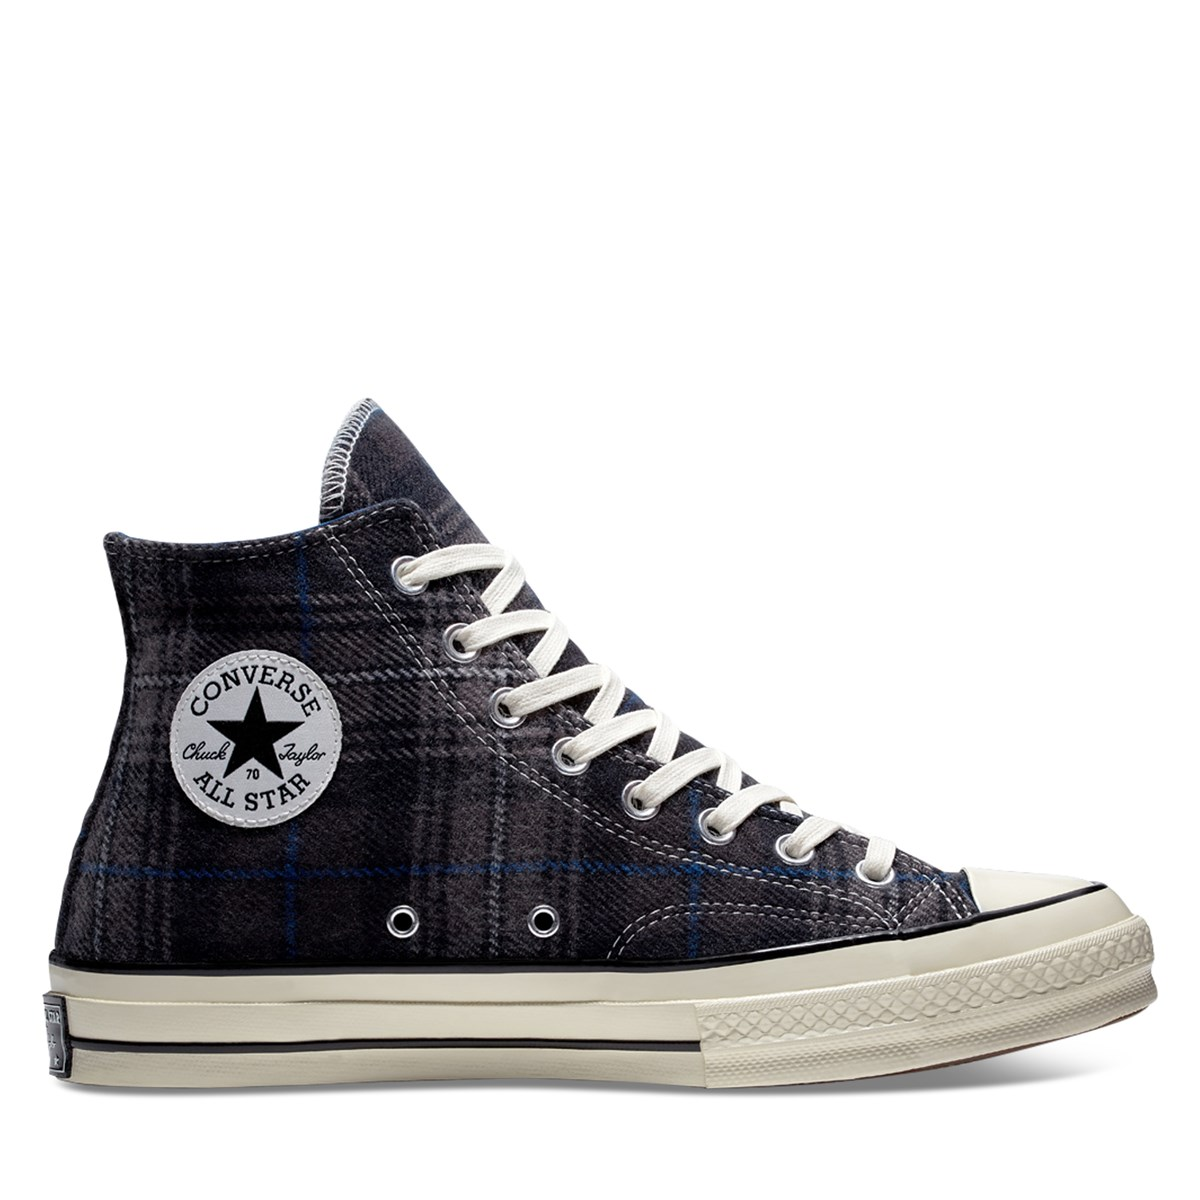 Women's Chuck Taylor All Star 70 High Top Sneakers in Black Plaid